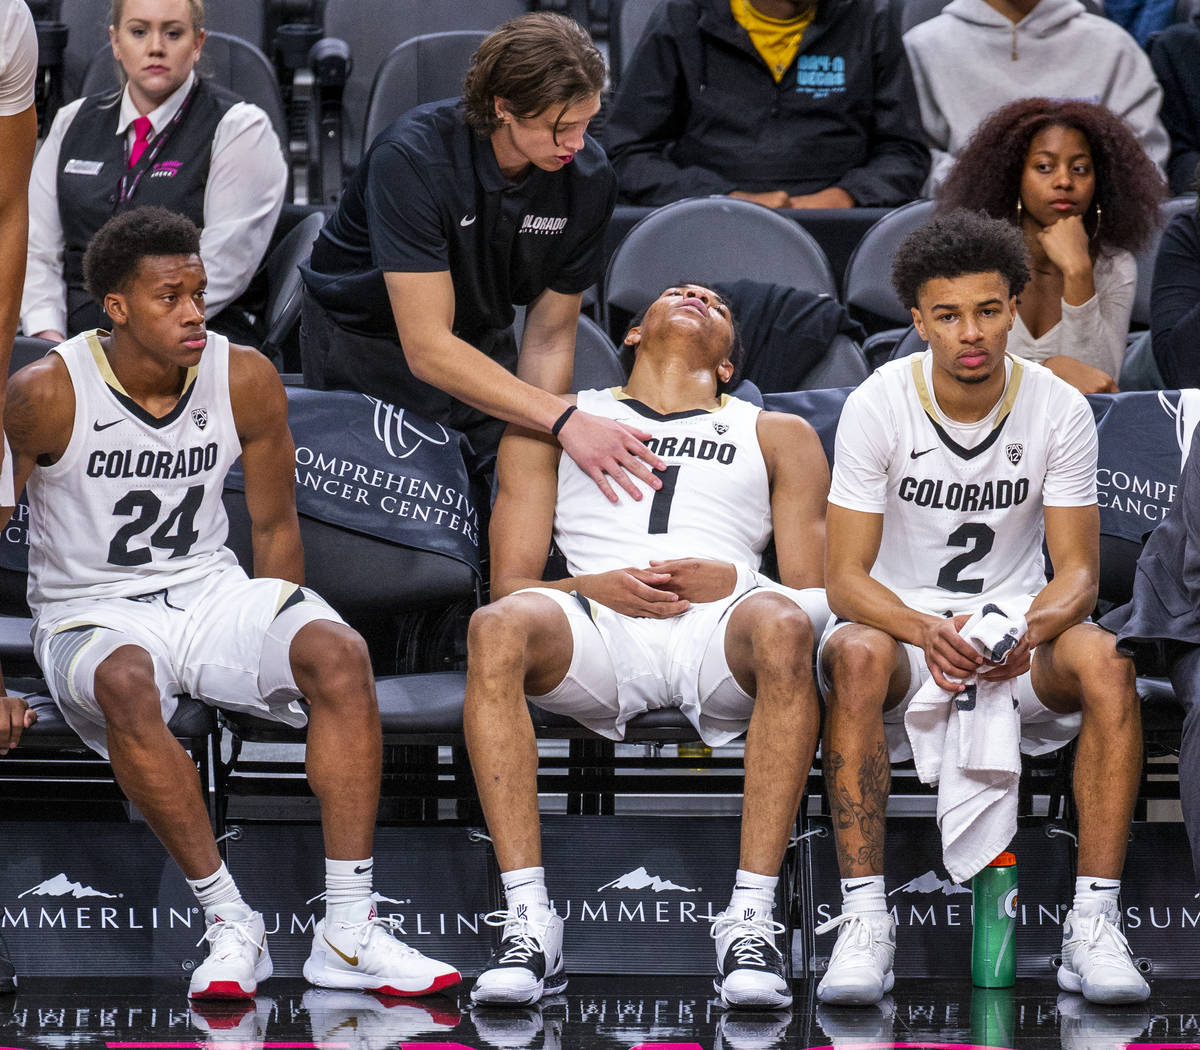 Colorado guard Tyler Bey (1, center) is tapped out on the bench during a rest versus Wyoming du ...